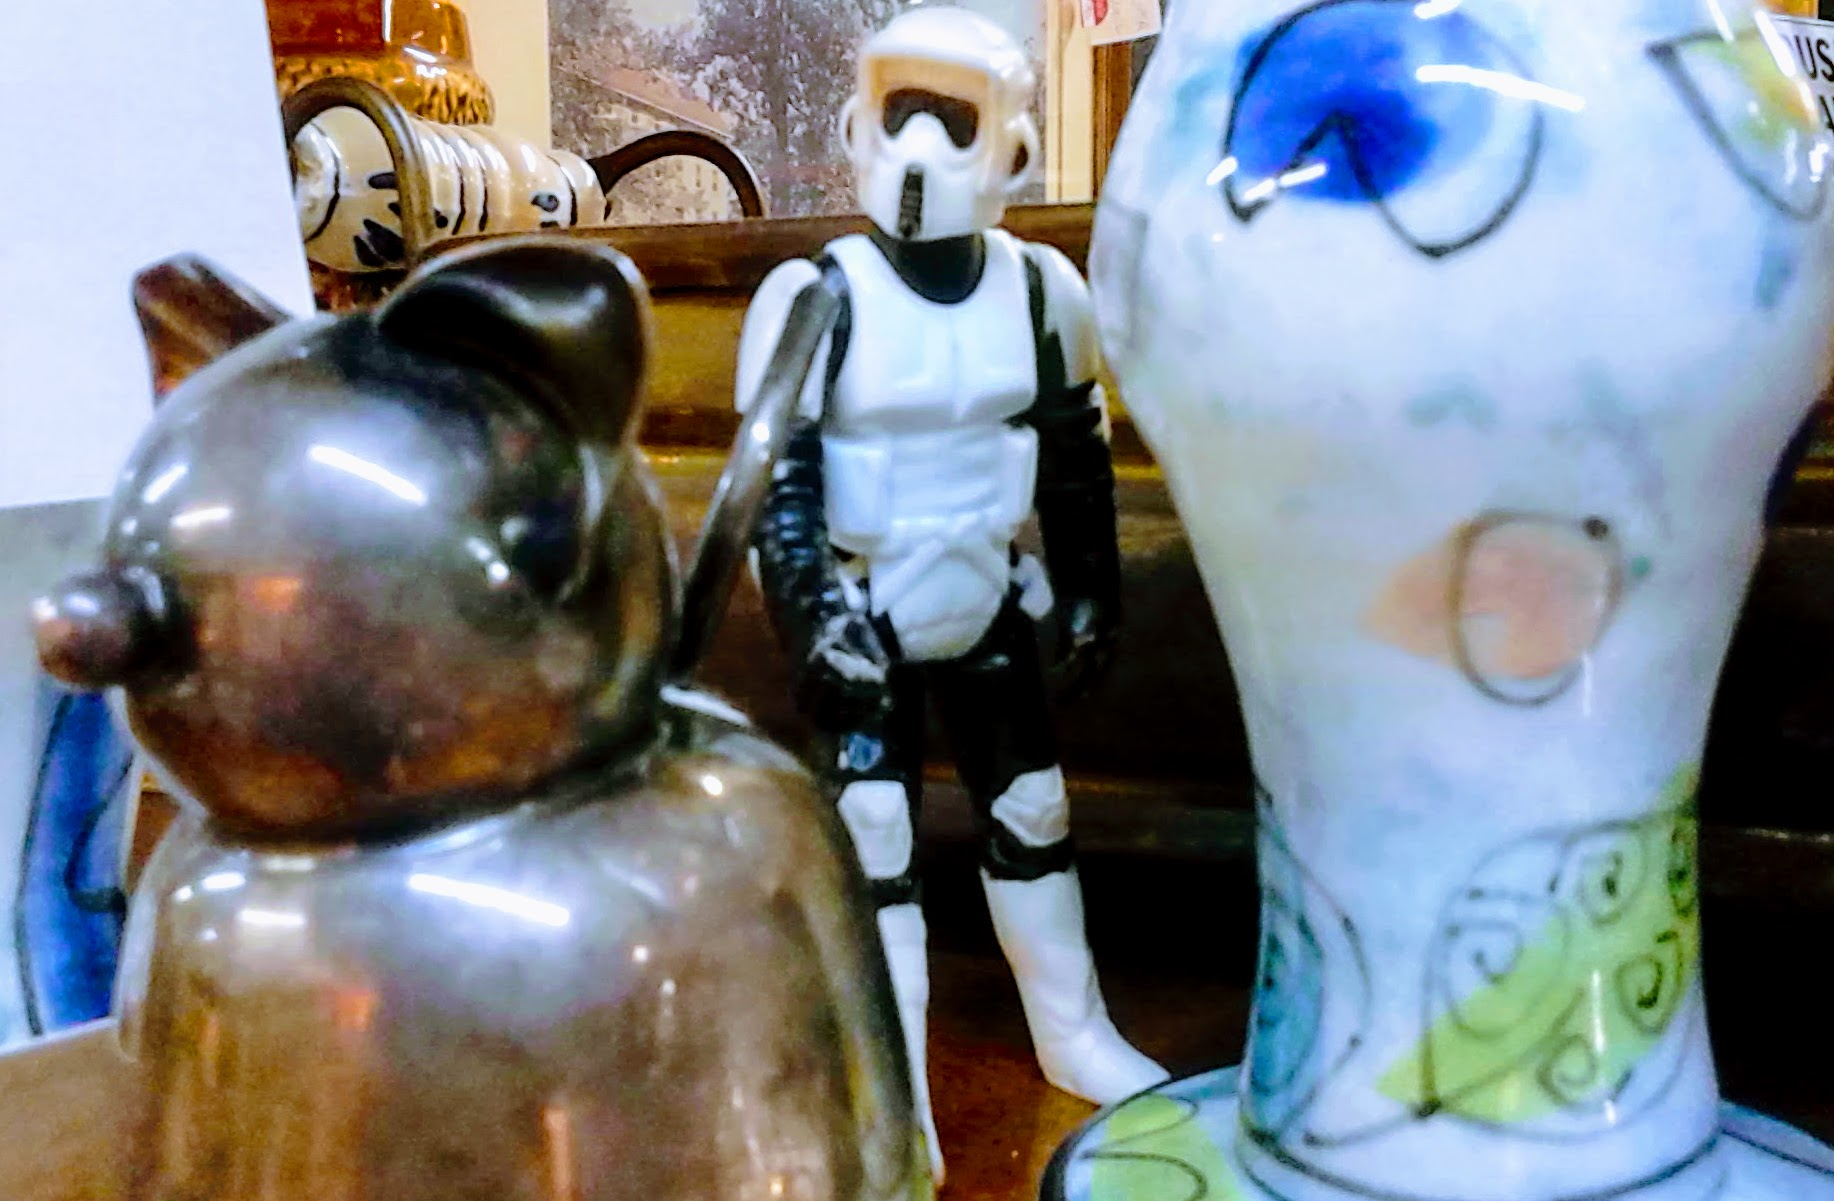 stormtrooper antique store